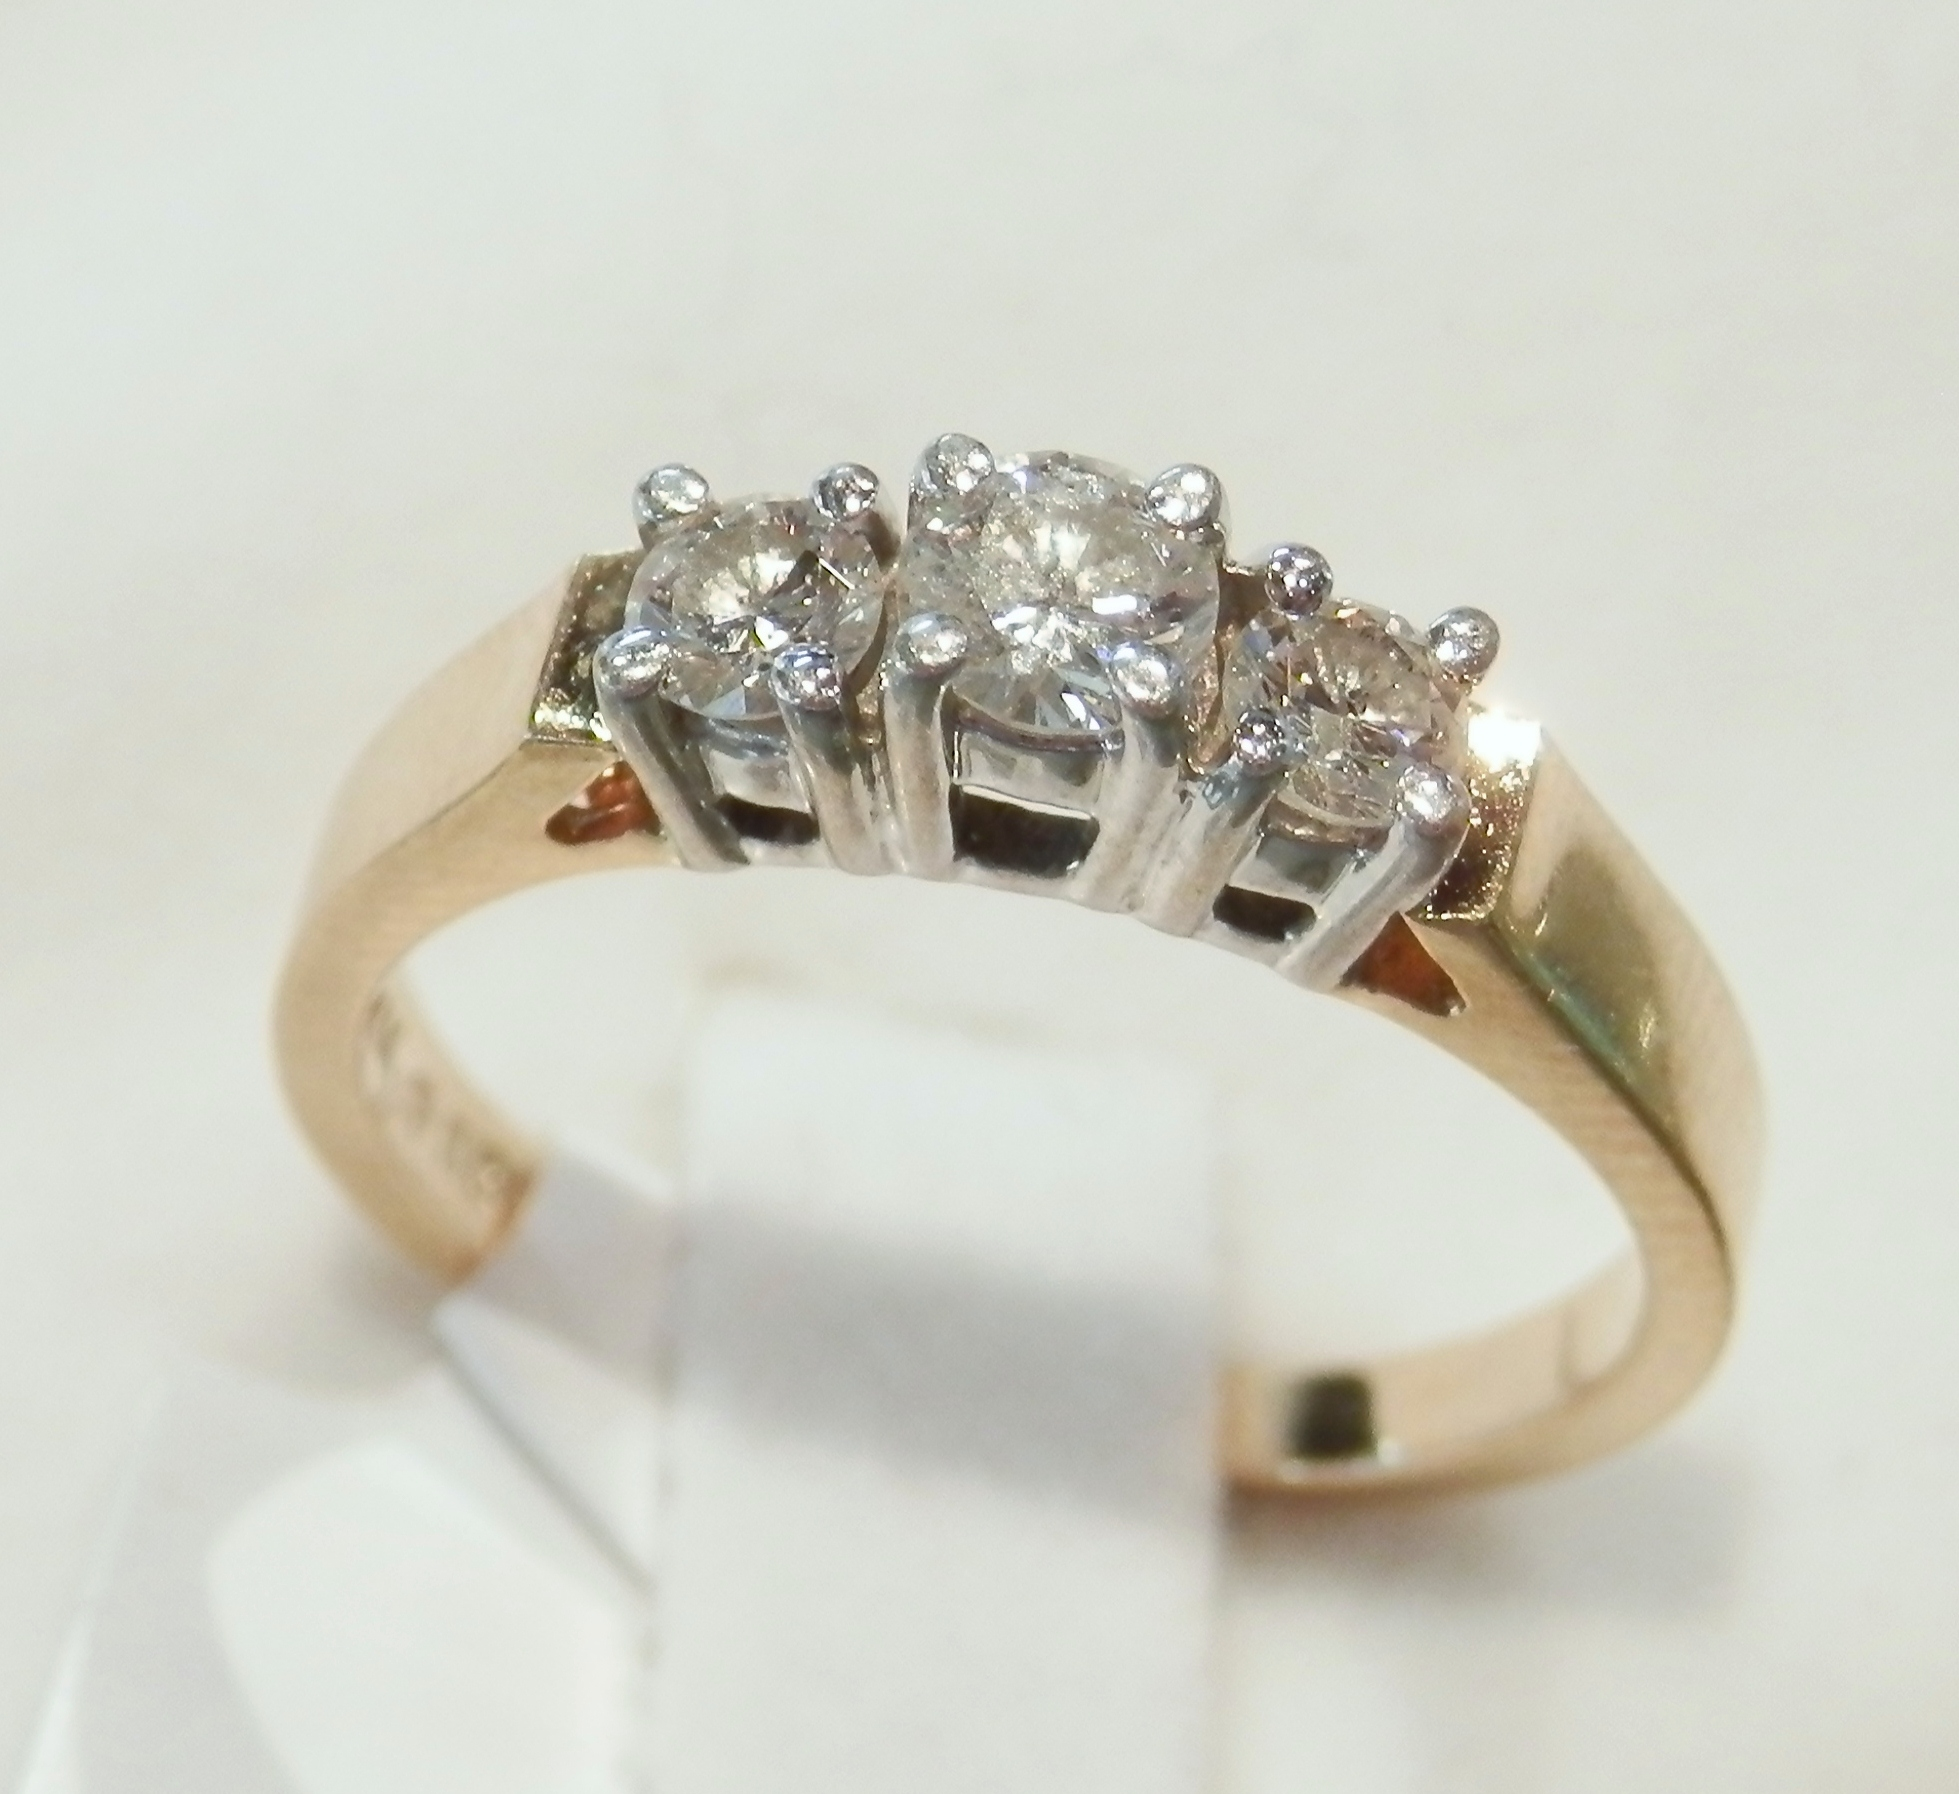 t rings engagement past gold zales white collections future present v ring in diamond wedding outlet w c